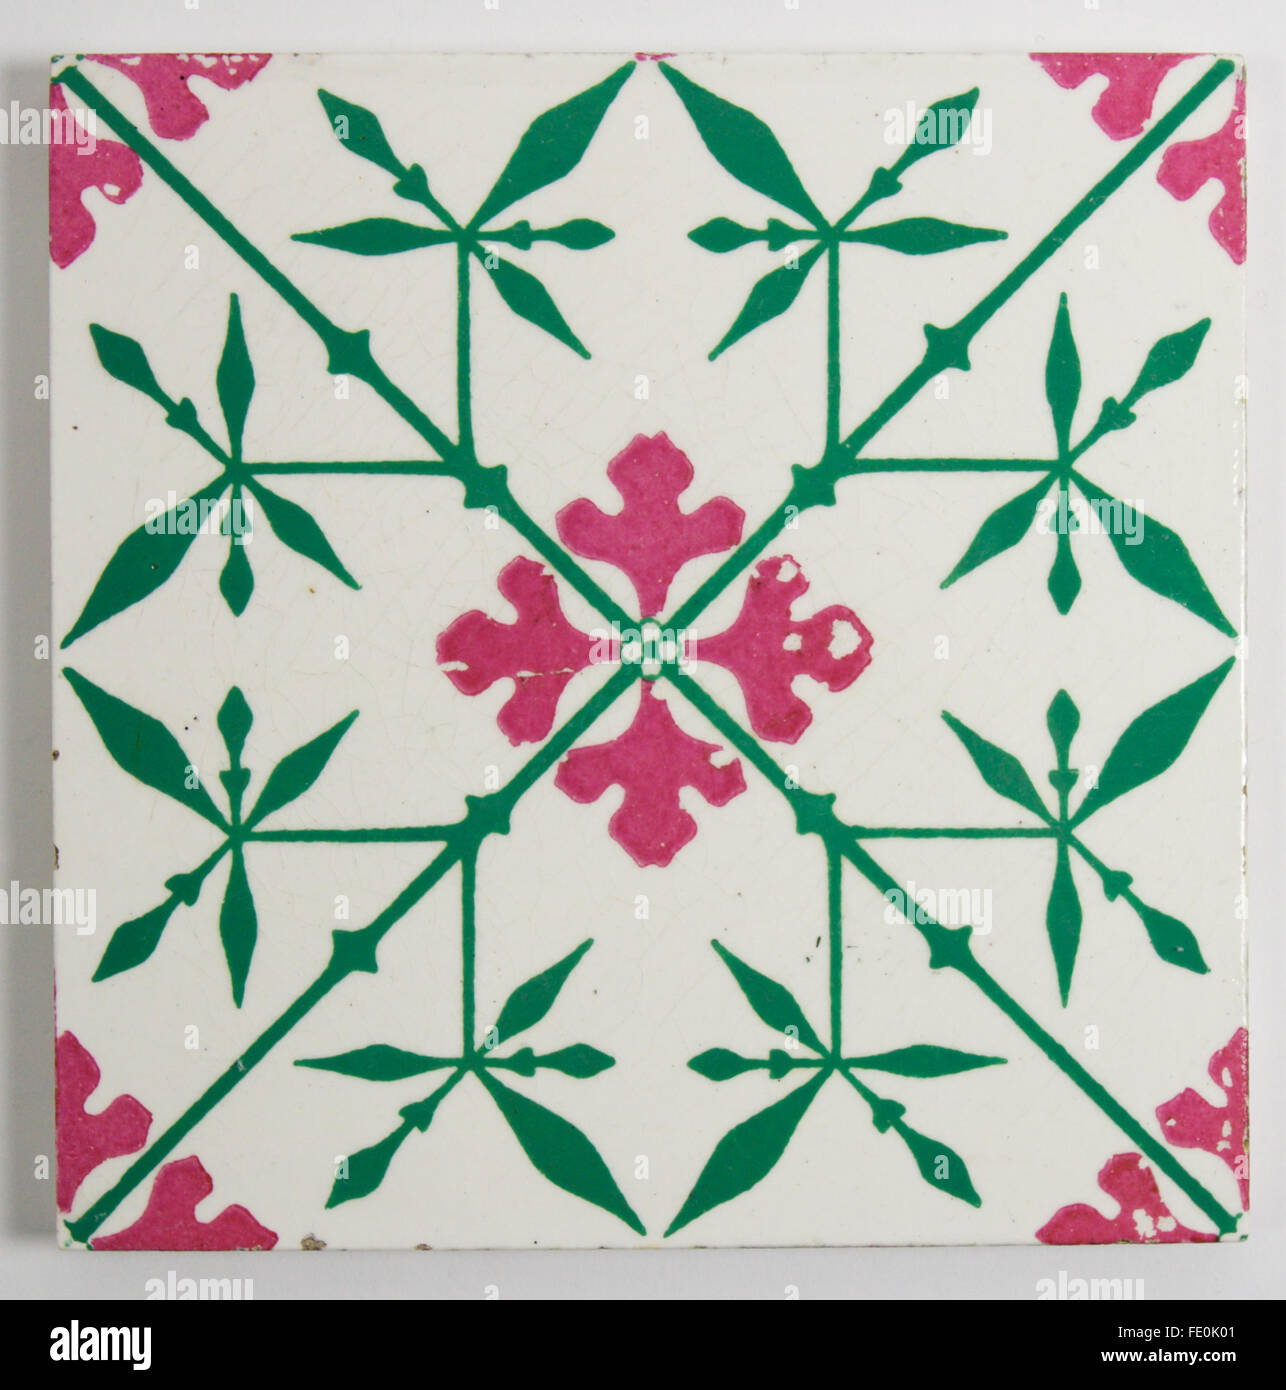 Antique Minton Gothic Revival tile designed by A.W.N. Pugin circa 1860. The printed and enamelled tile is in a striking - Stock Image